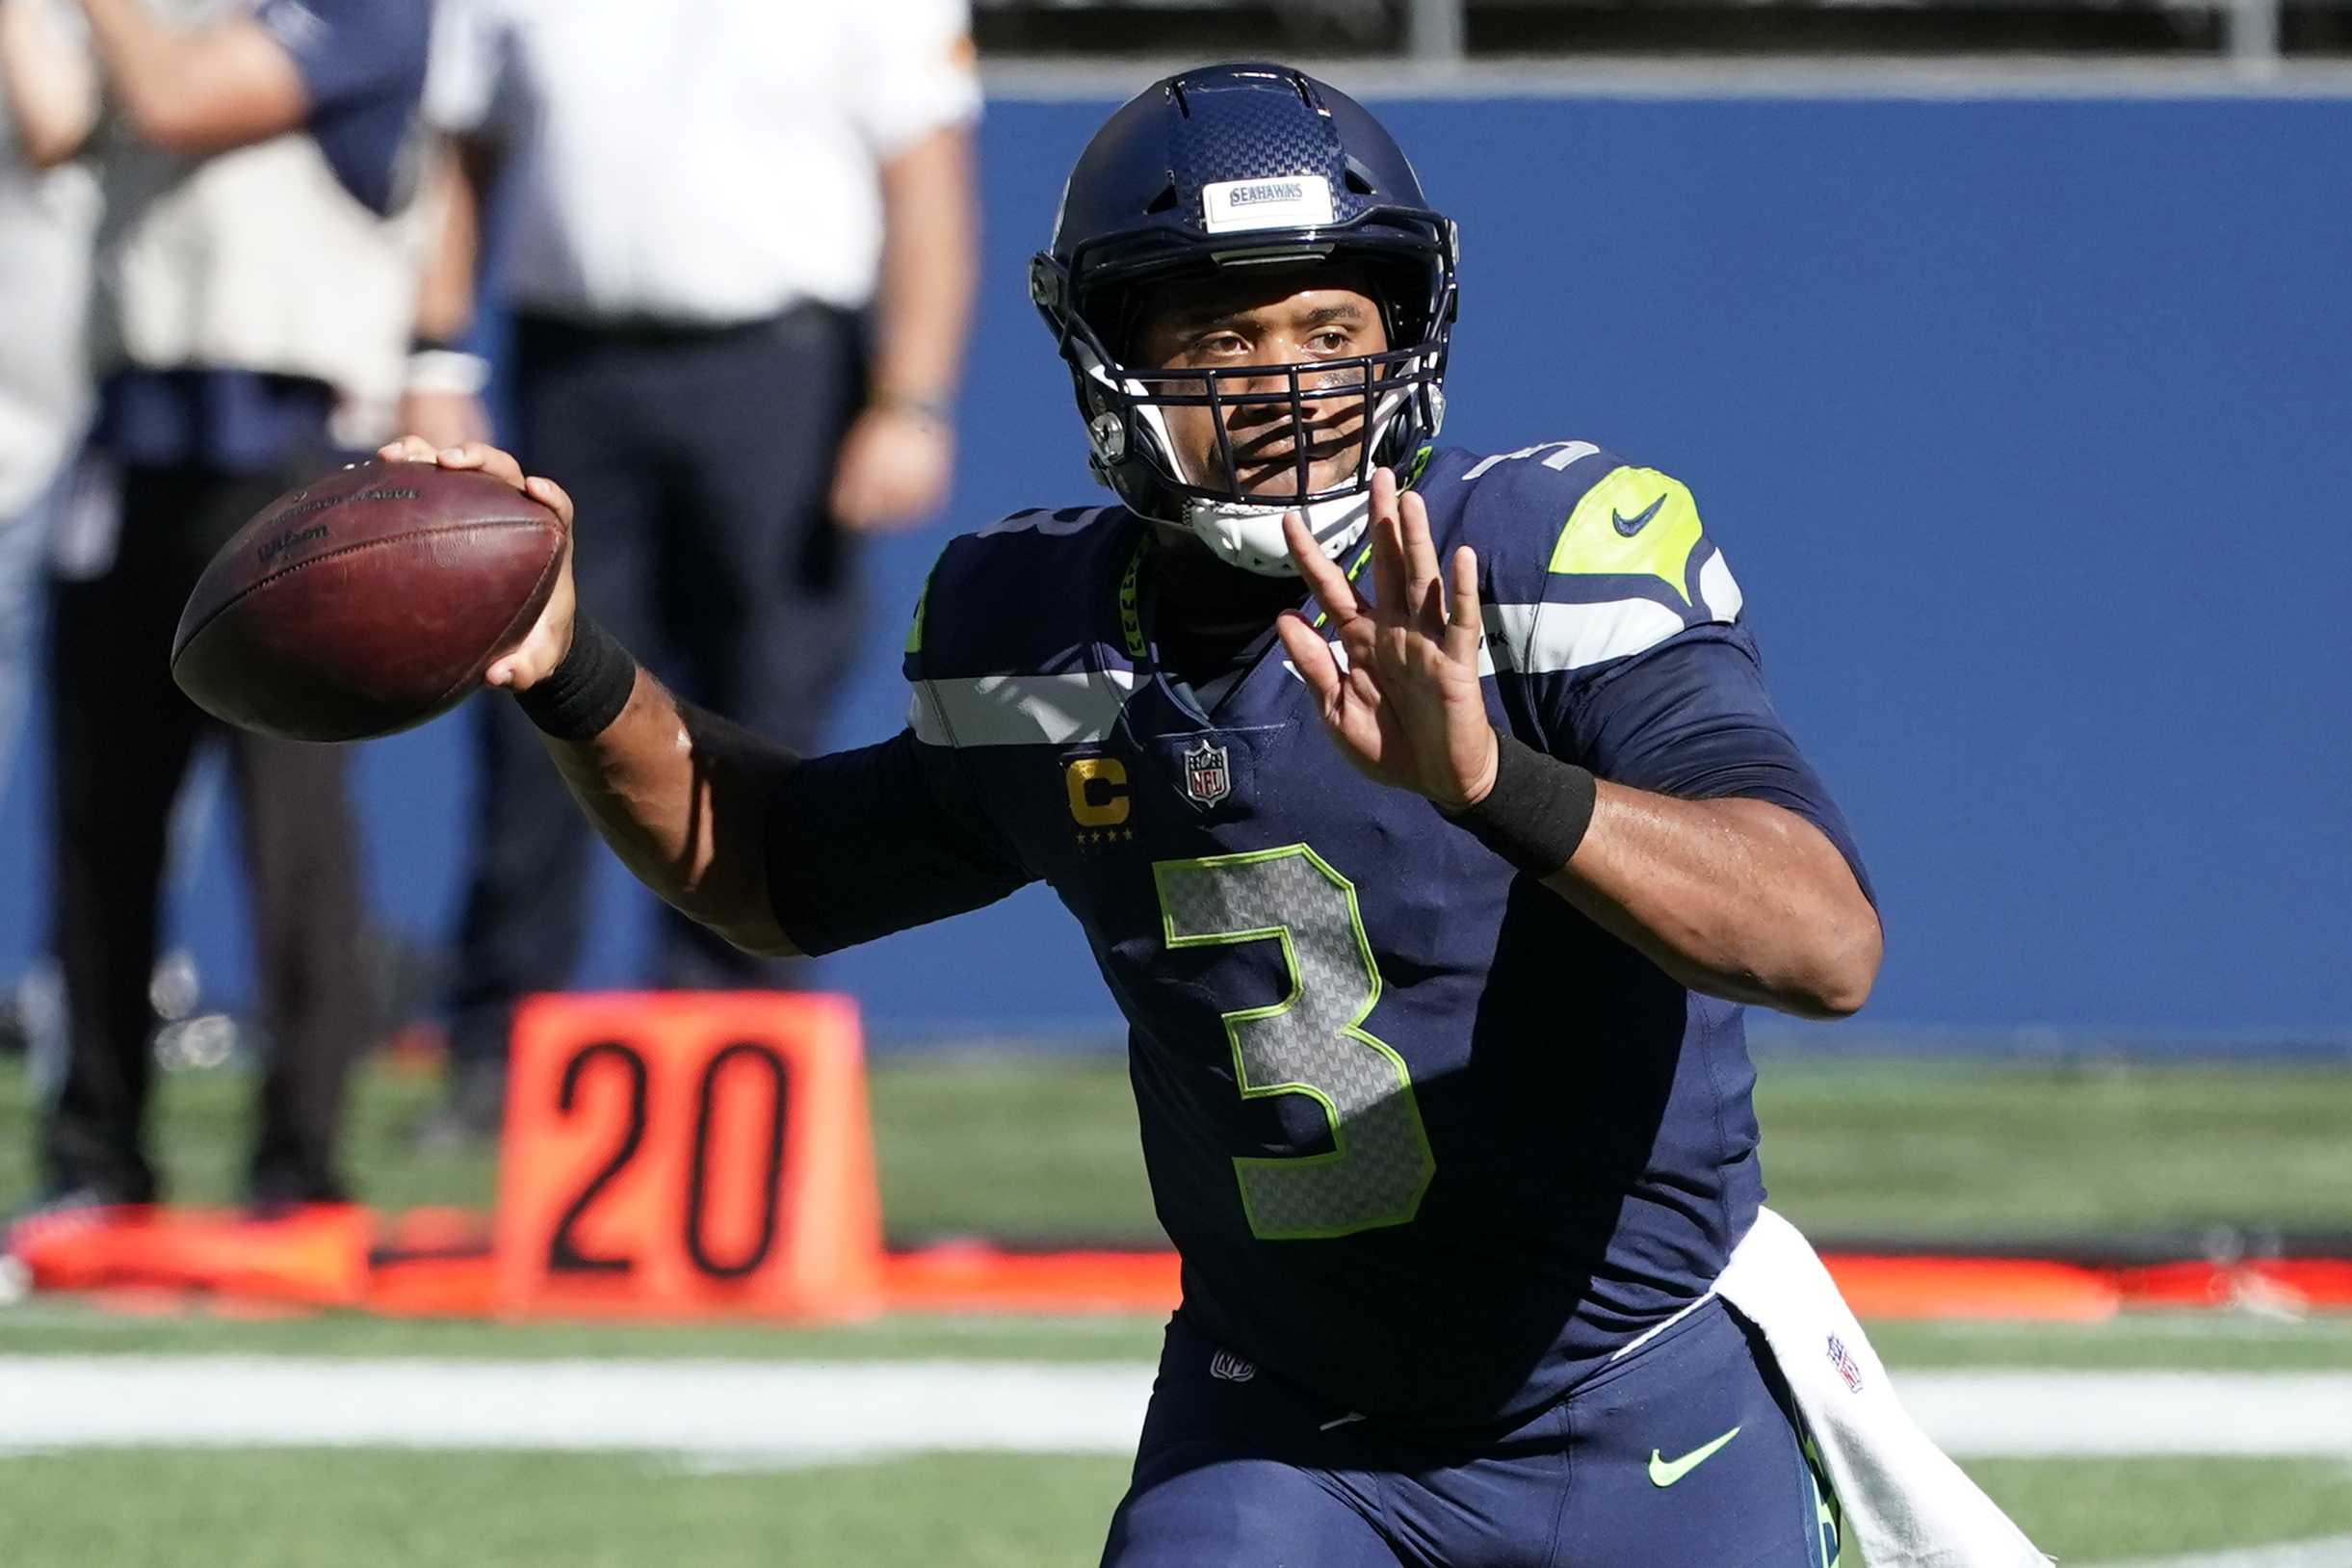 Russell Wilson Breaks Patrick Mahomes' NFL Record for TD Passes in 1st 3 Games